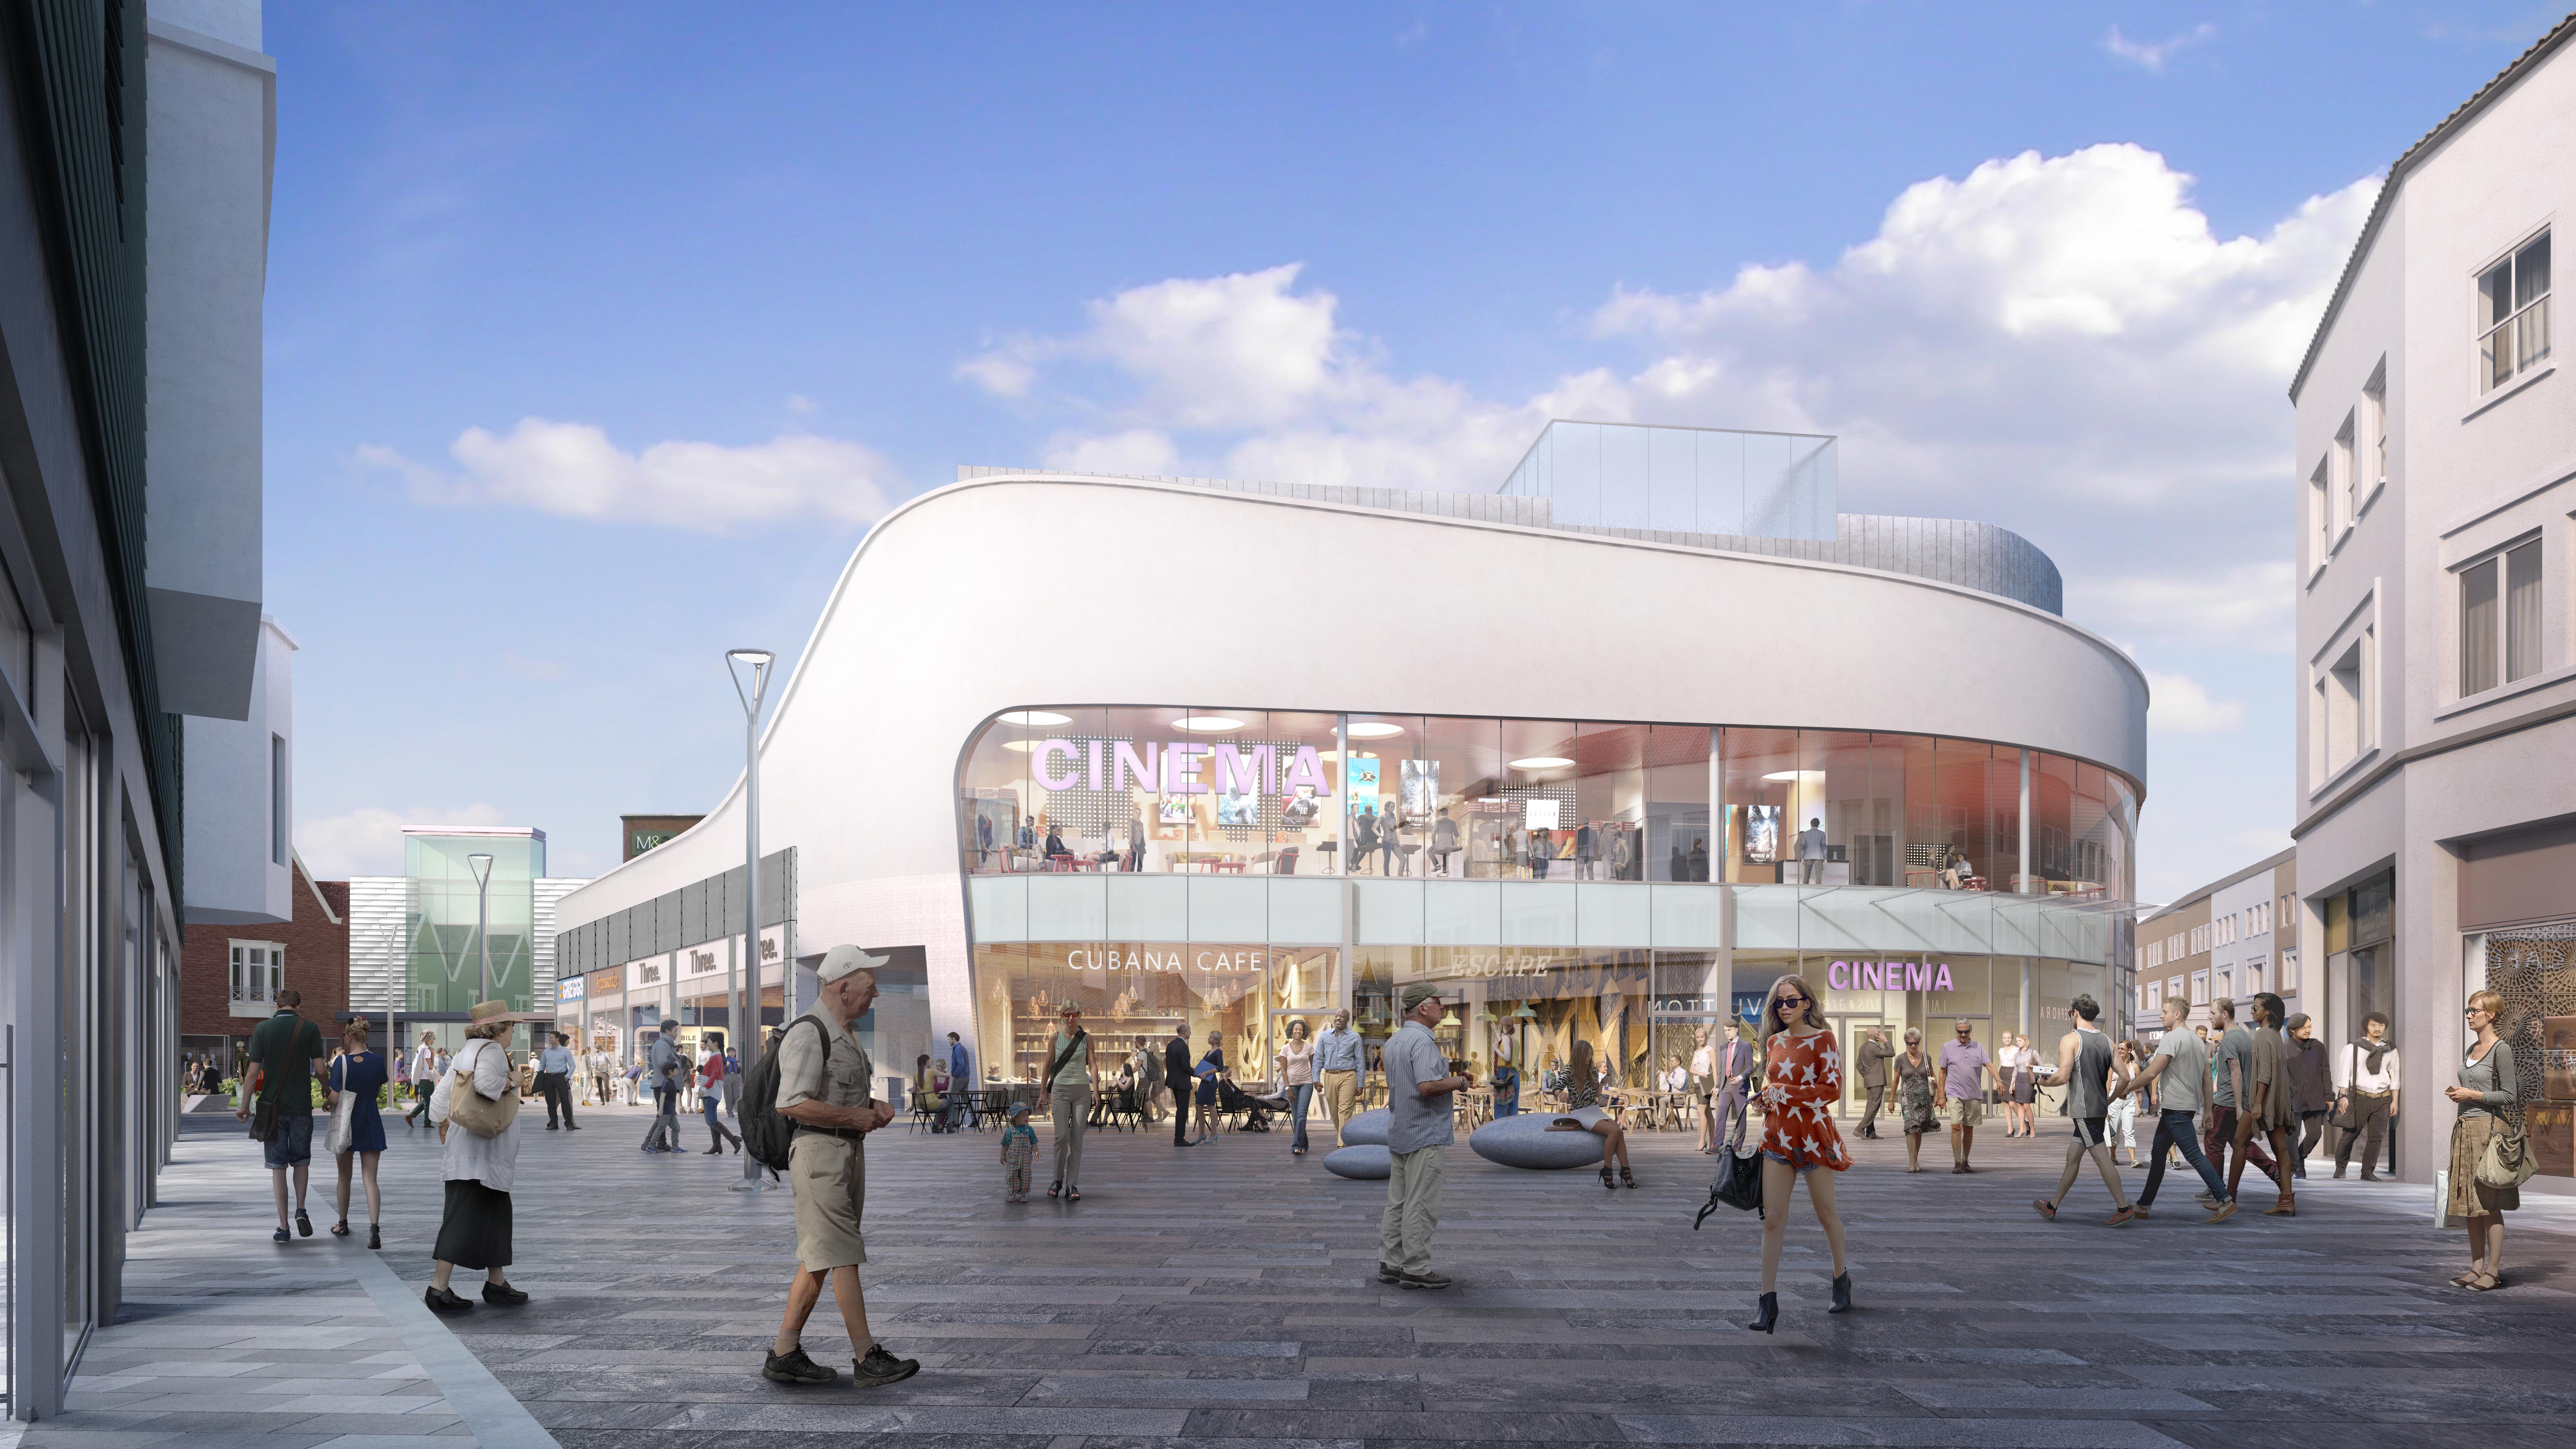 Planning permission granted for new cinema at Dolphin Shopping Centre